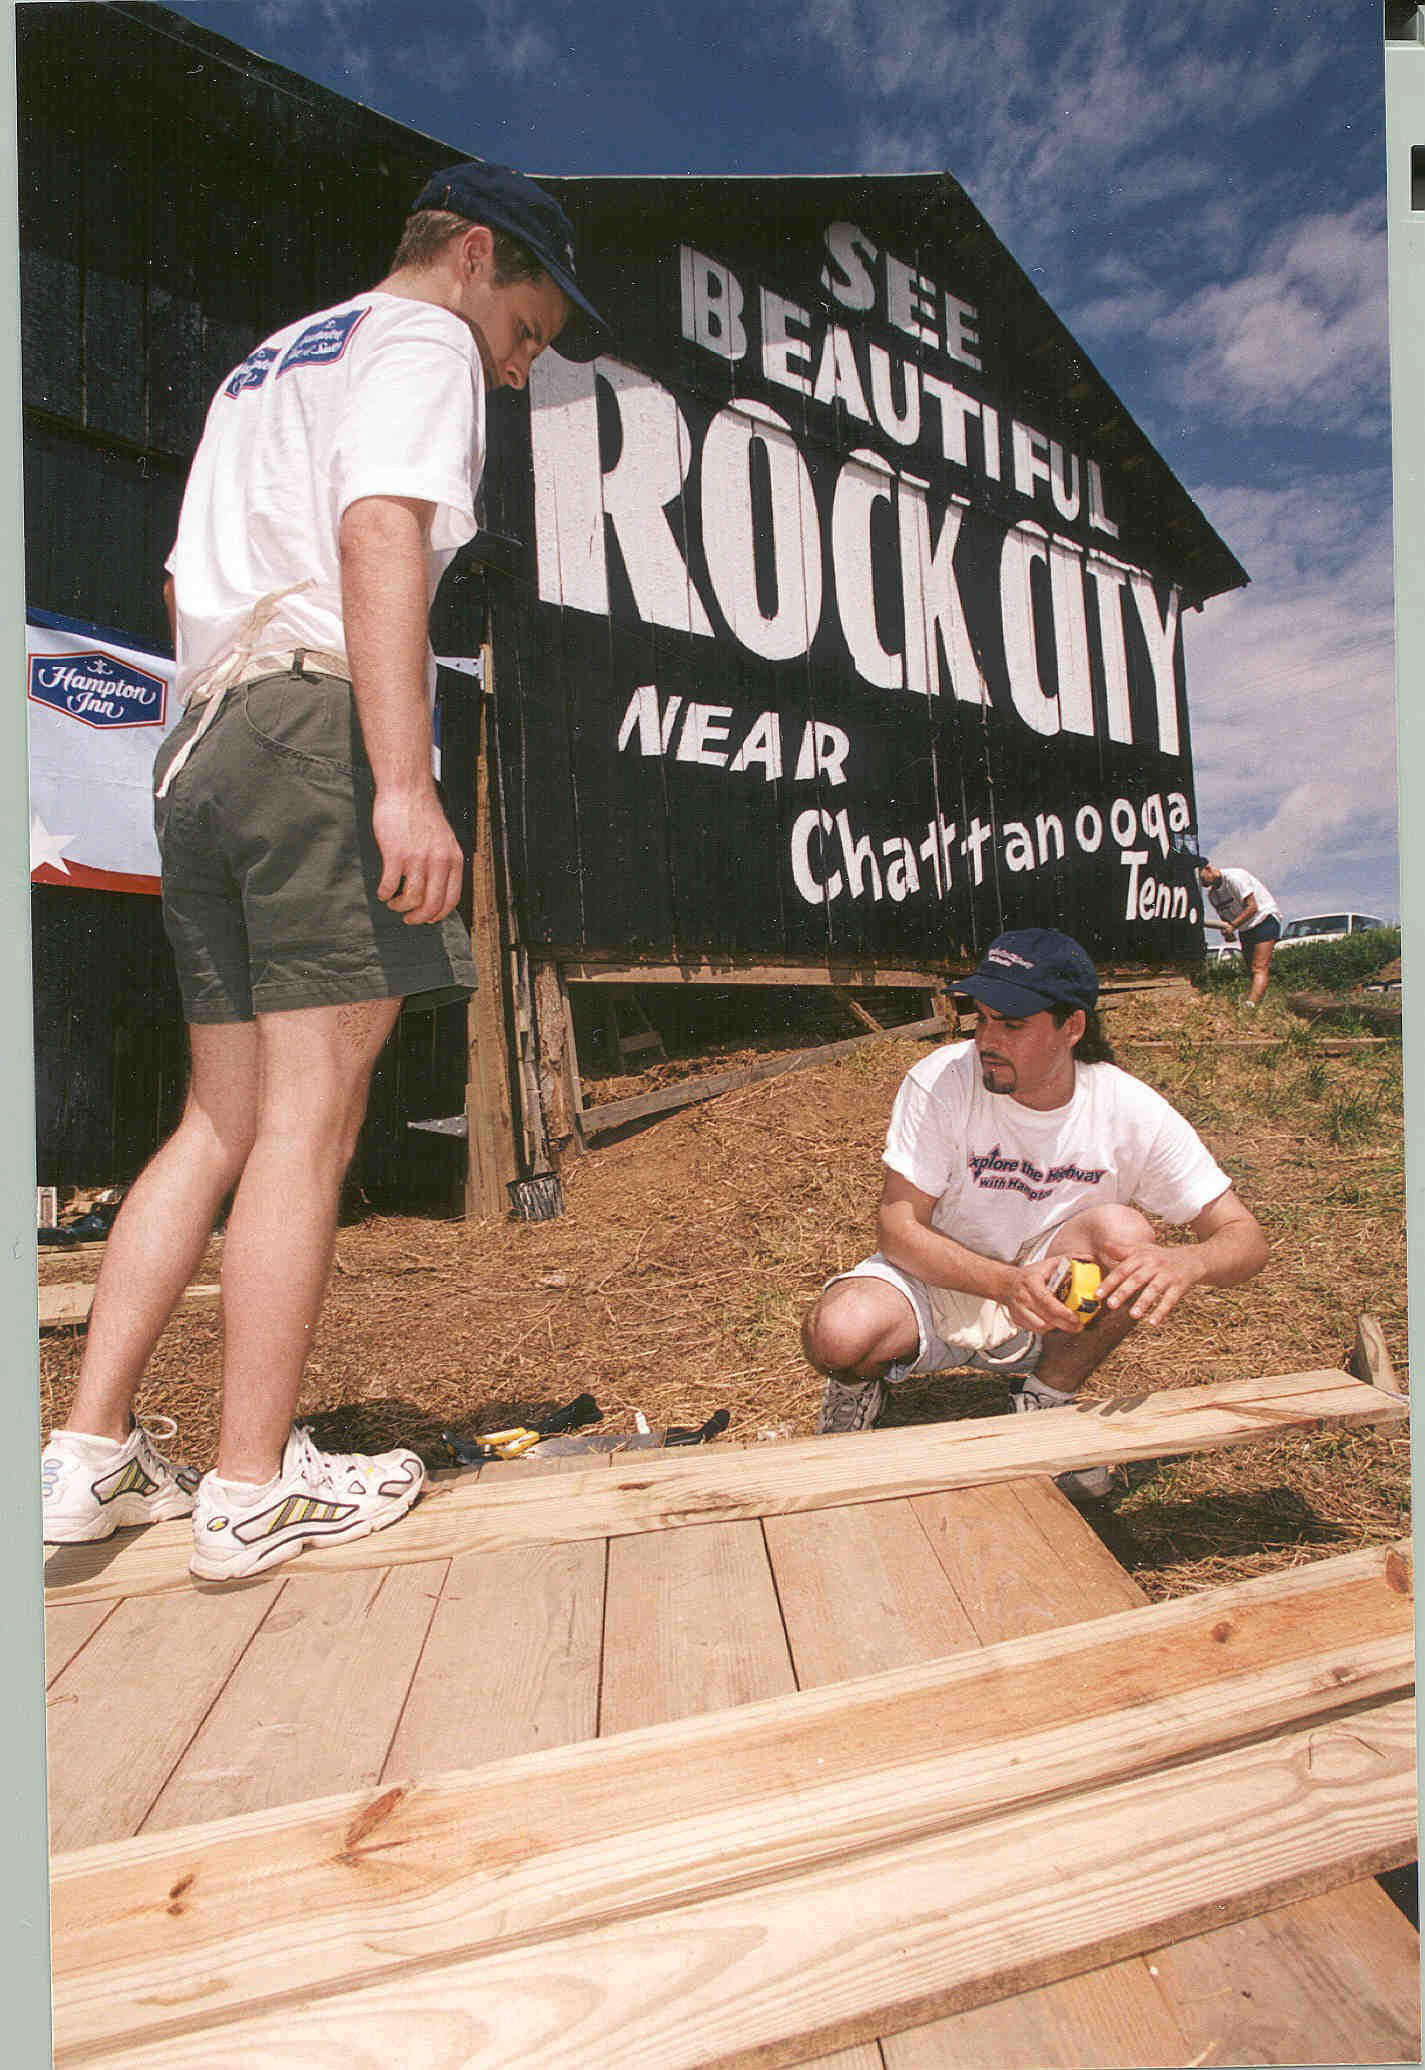 "Hampton employees and community volunteers partnered together to repaint and restore the ""See Rock City"" barn on June 15, 2000, rebuilding the walls, doors, and roof. Traveling from Nashville, First Lady Martha Sundquist was on-hand assisting the efforts to restore the 60-year old icon."